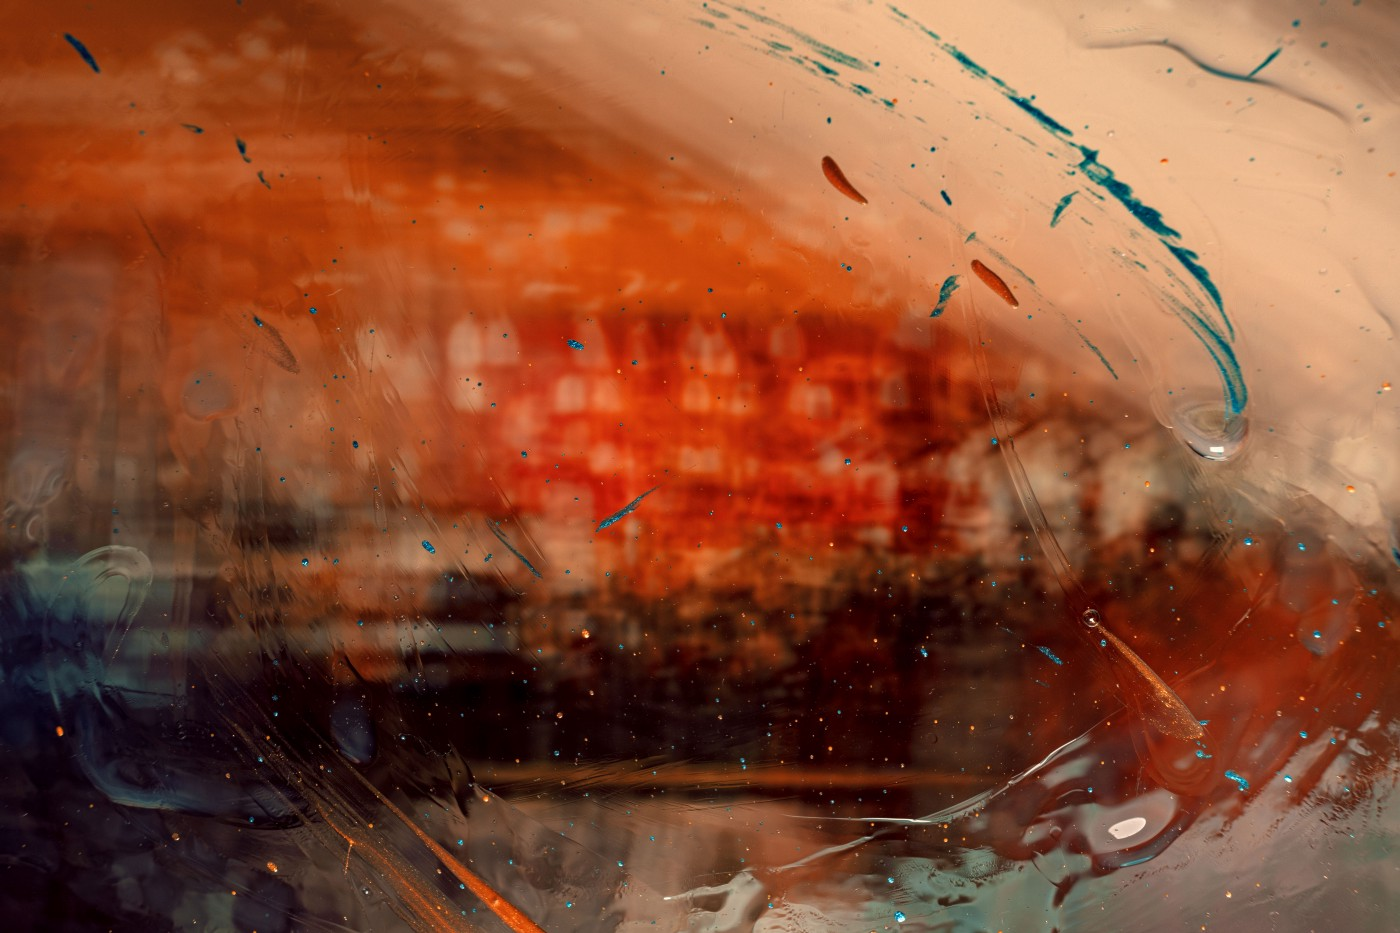 Abstract image of predominately red and cream colors with green and blue splatters, mixed media.